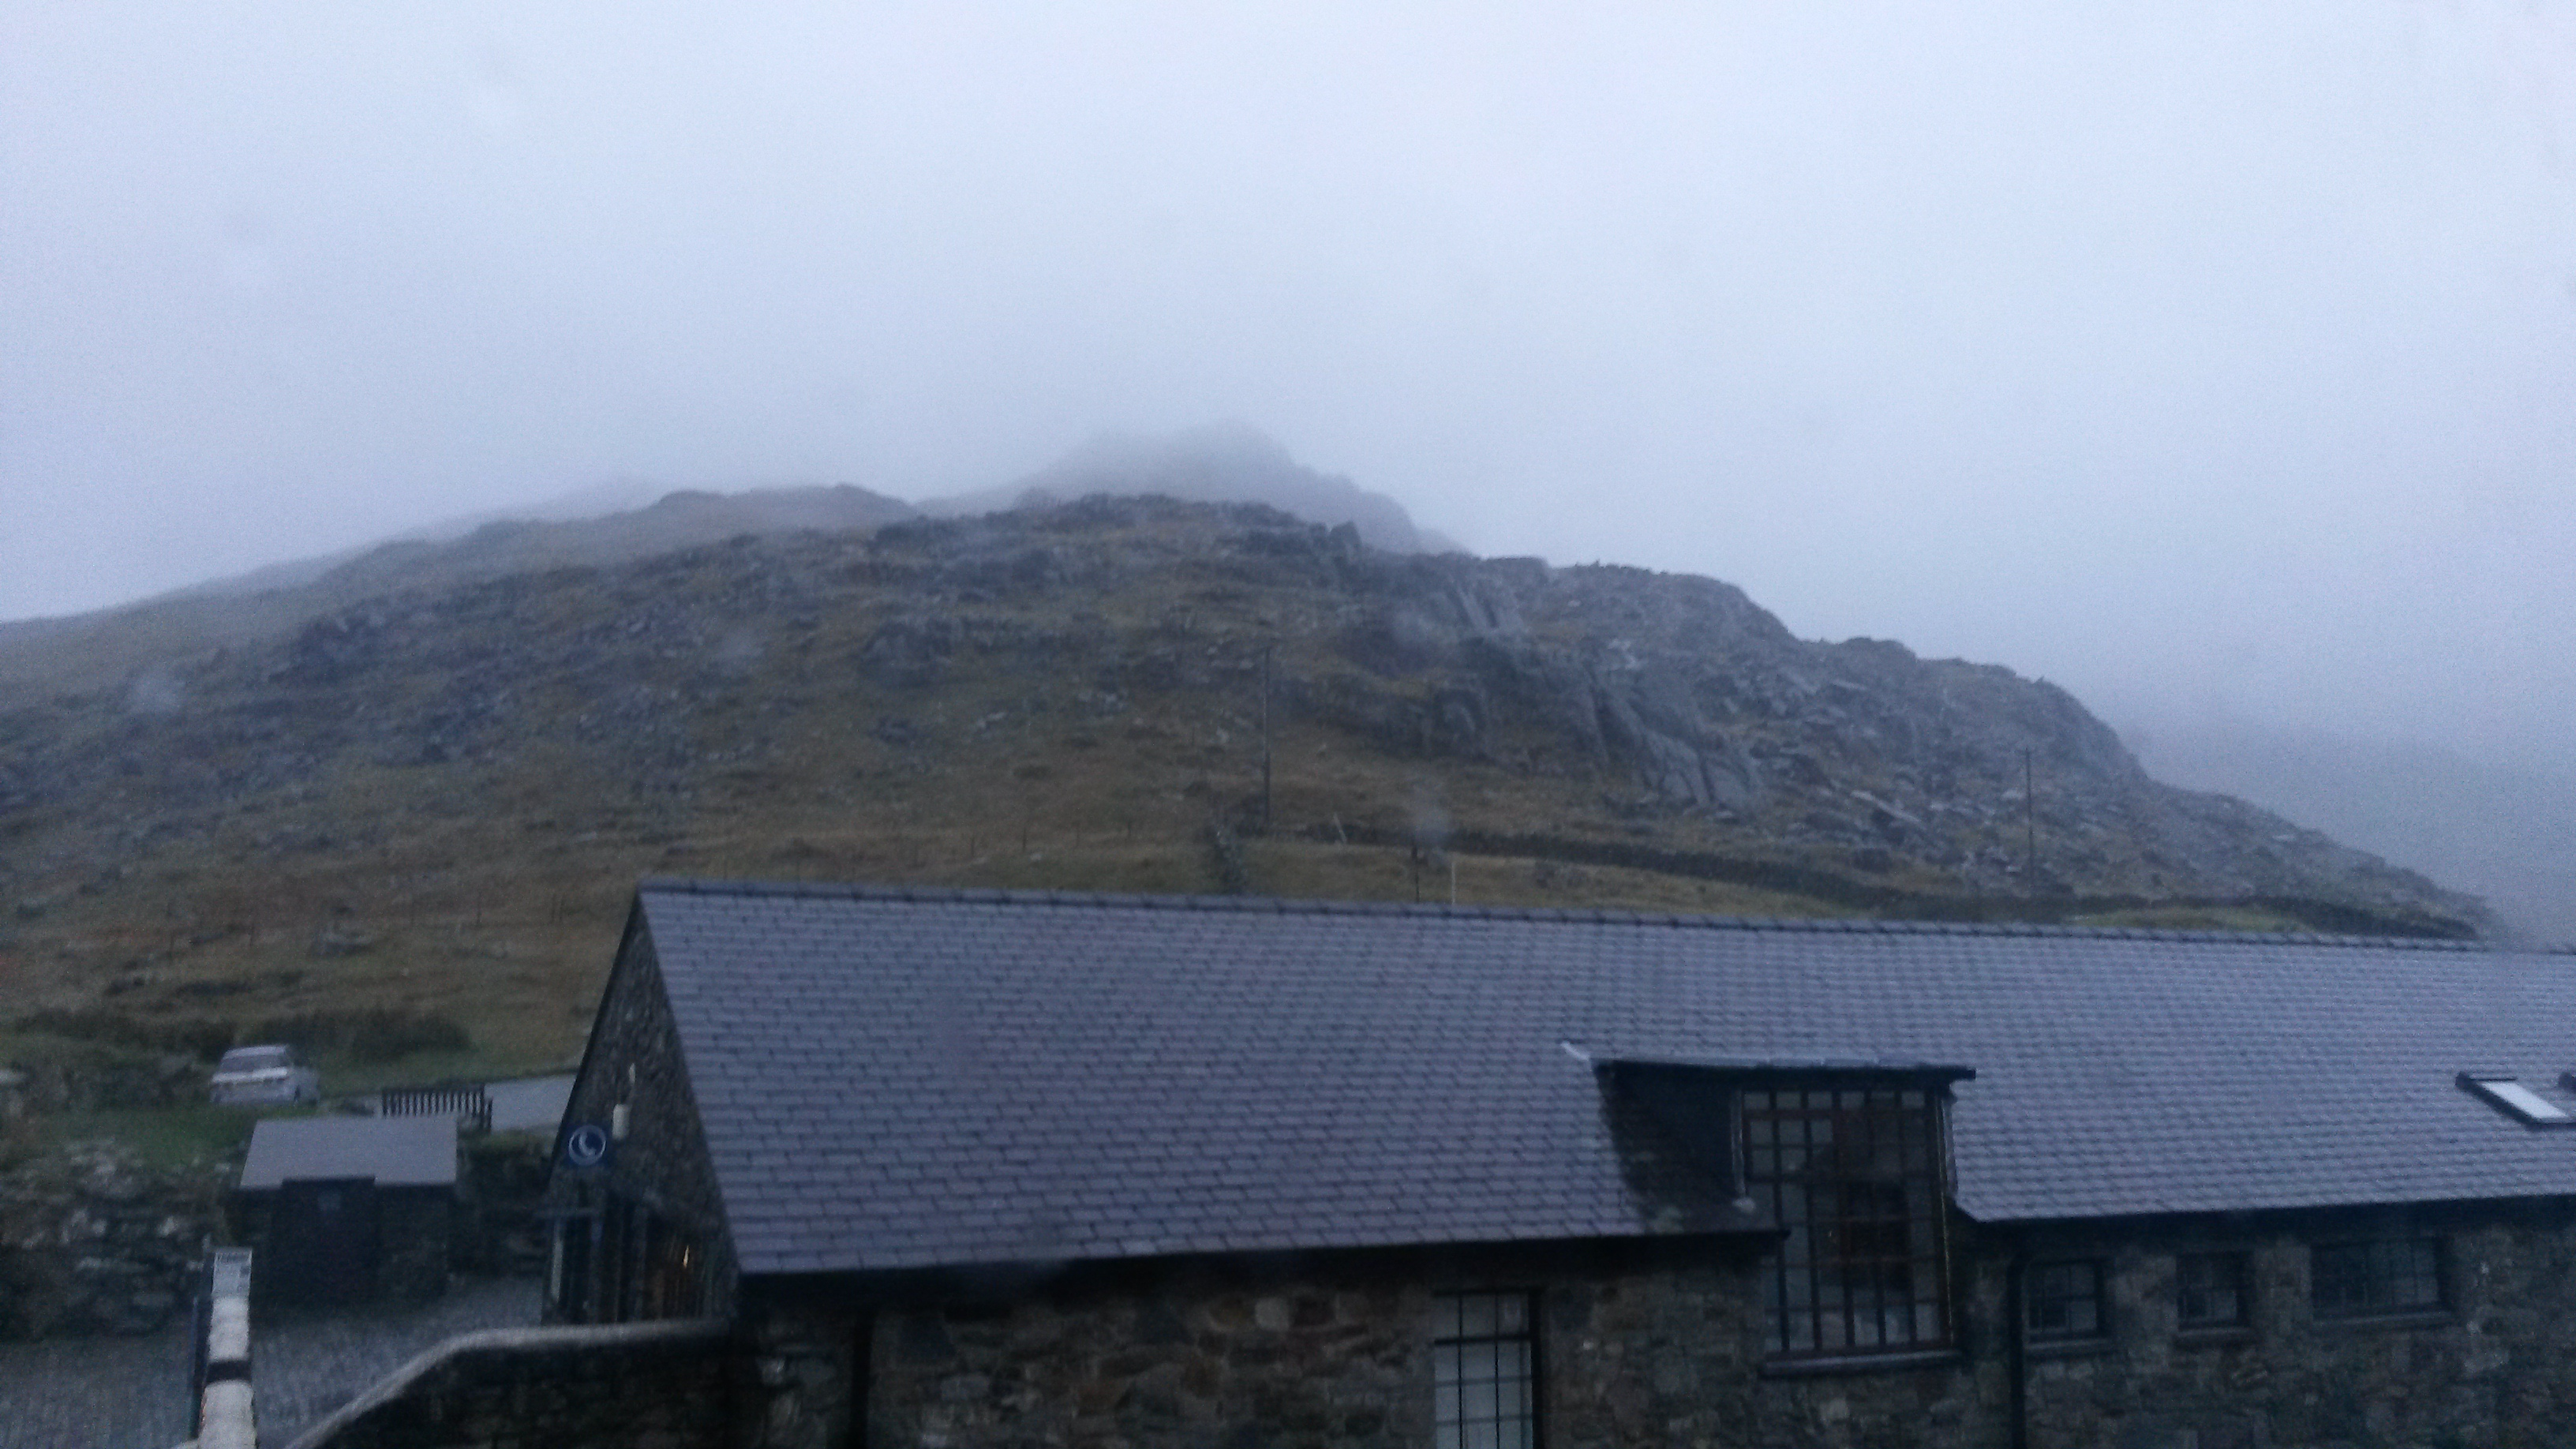 The view of Snowdon from my dorm - overcast and wet